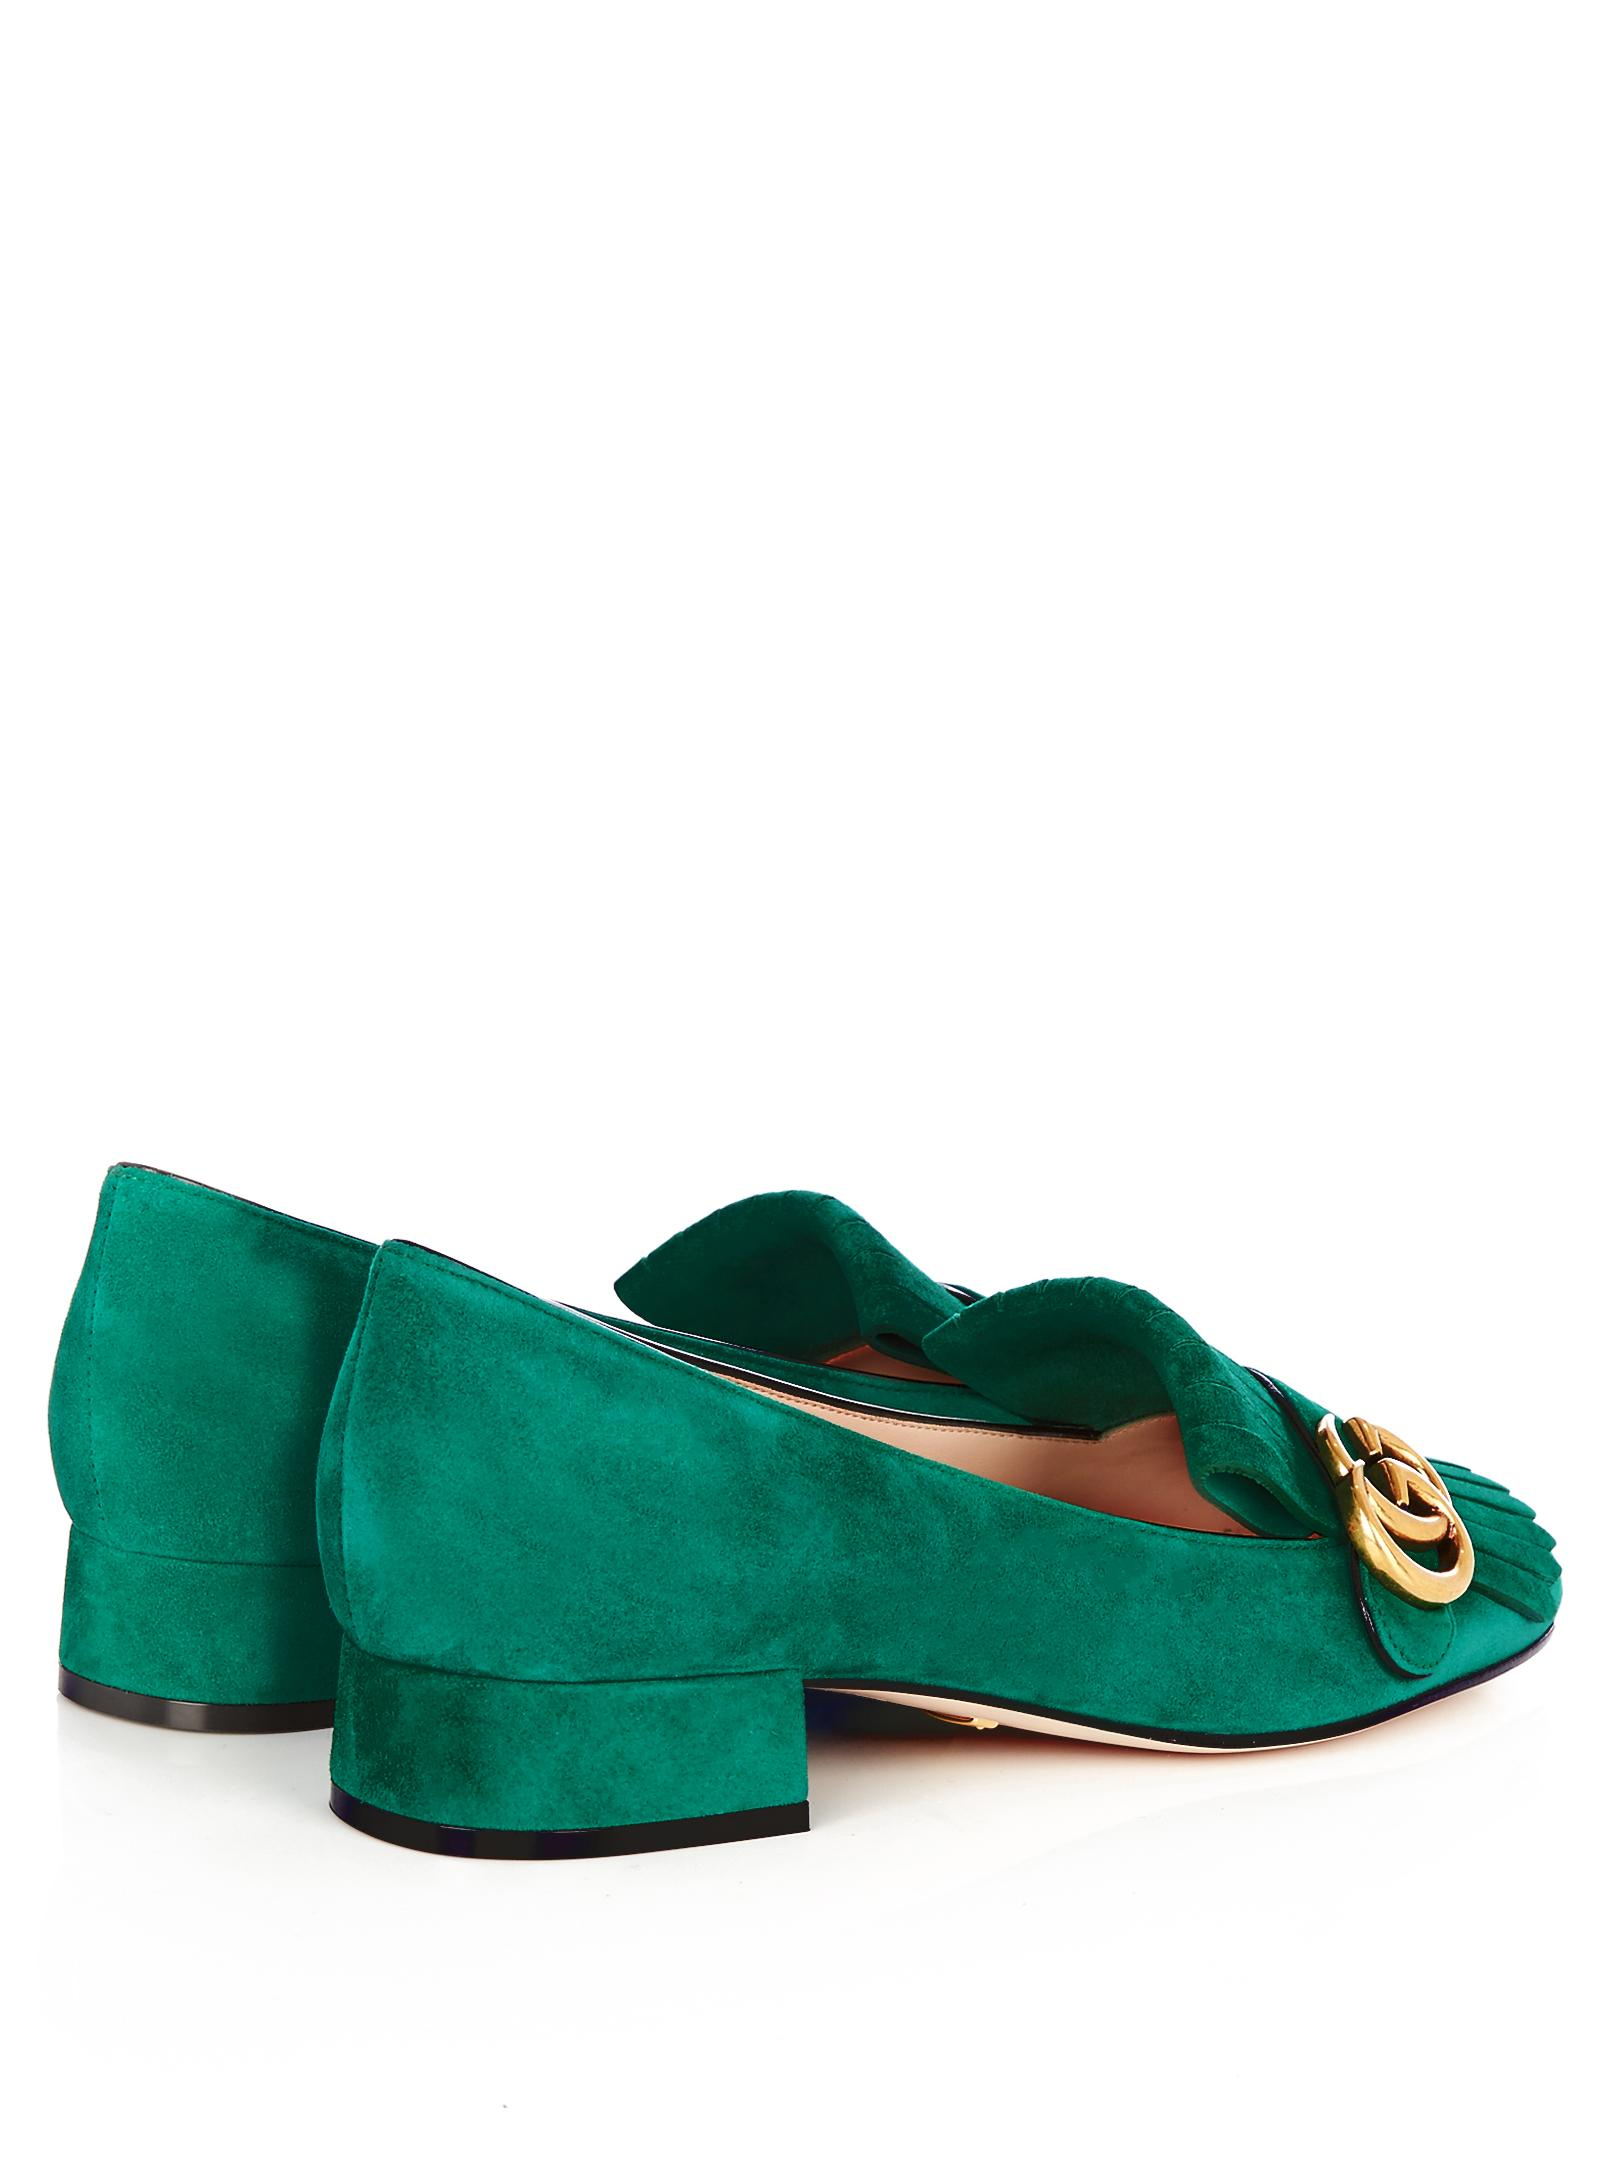 a314f10d27e Lyst - Gucci Marmont Fringed Suede Loafers in Green